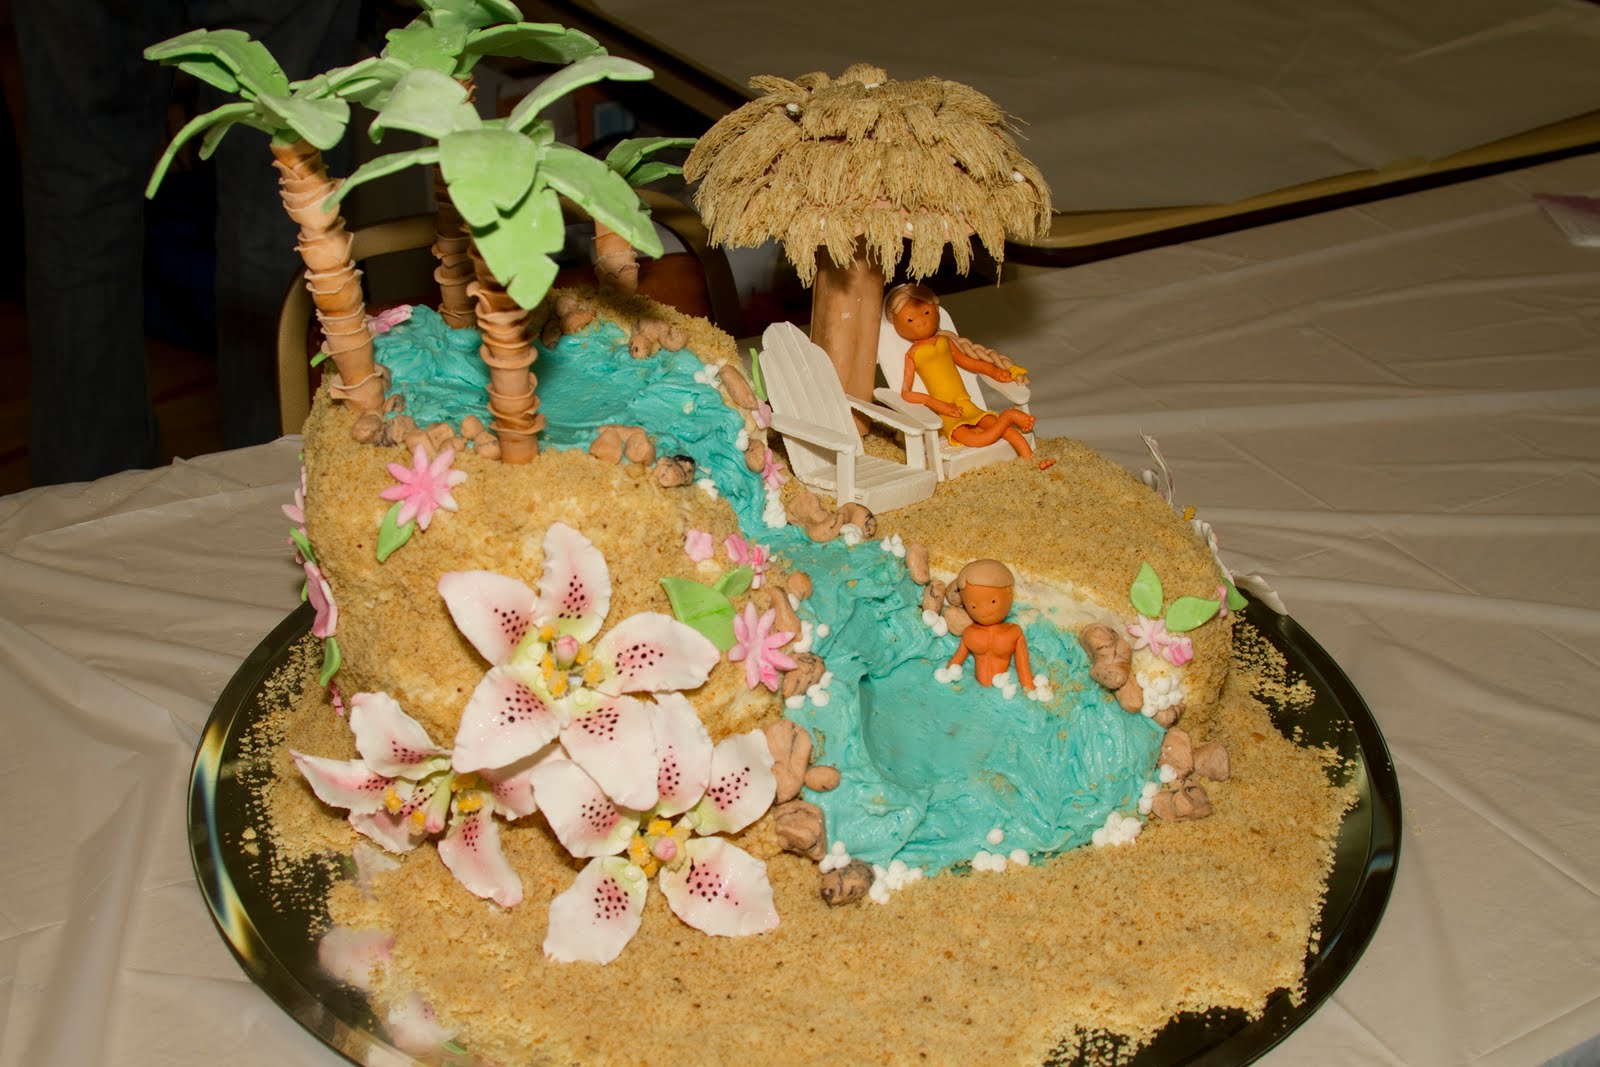 Cake Decoration Competition : All Tiered Up: Cake Decorating Contest Cake